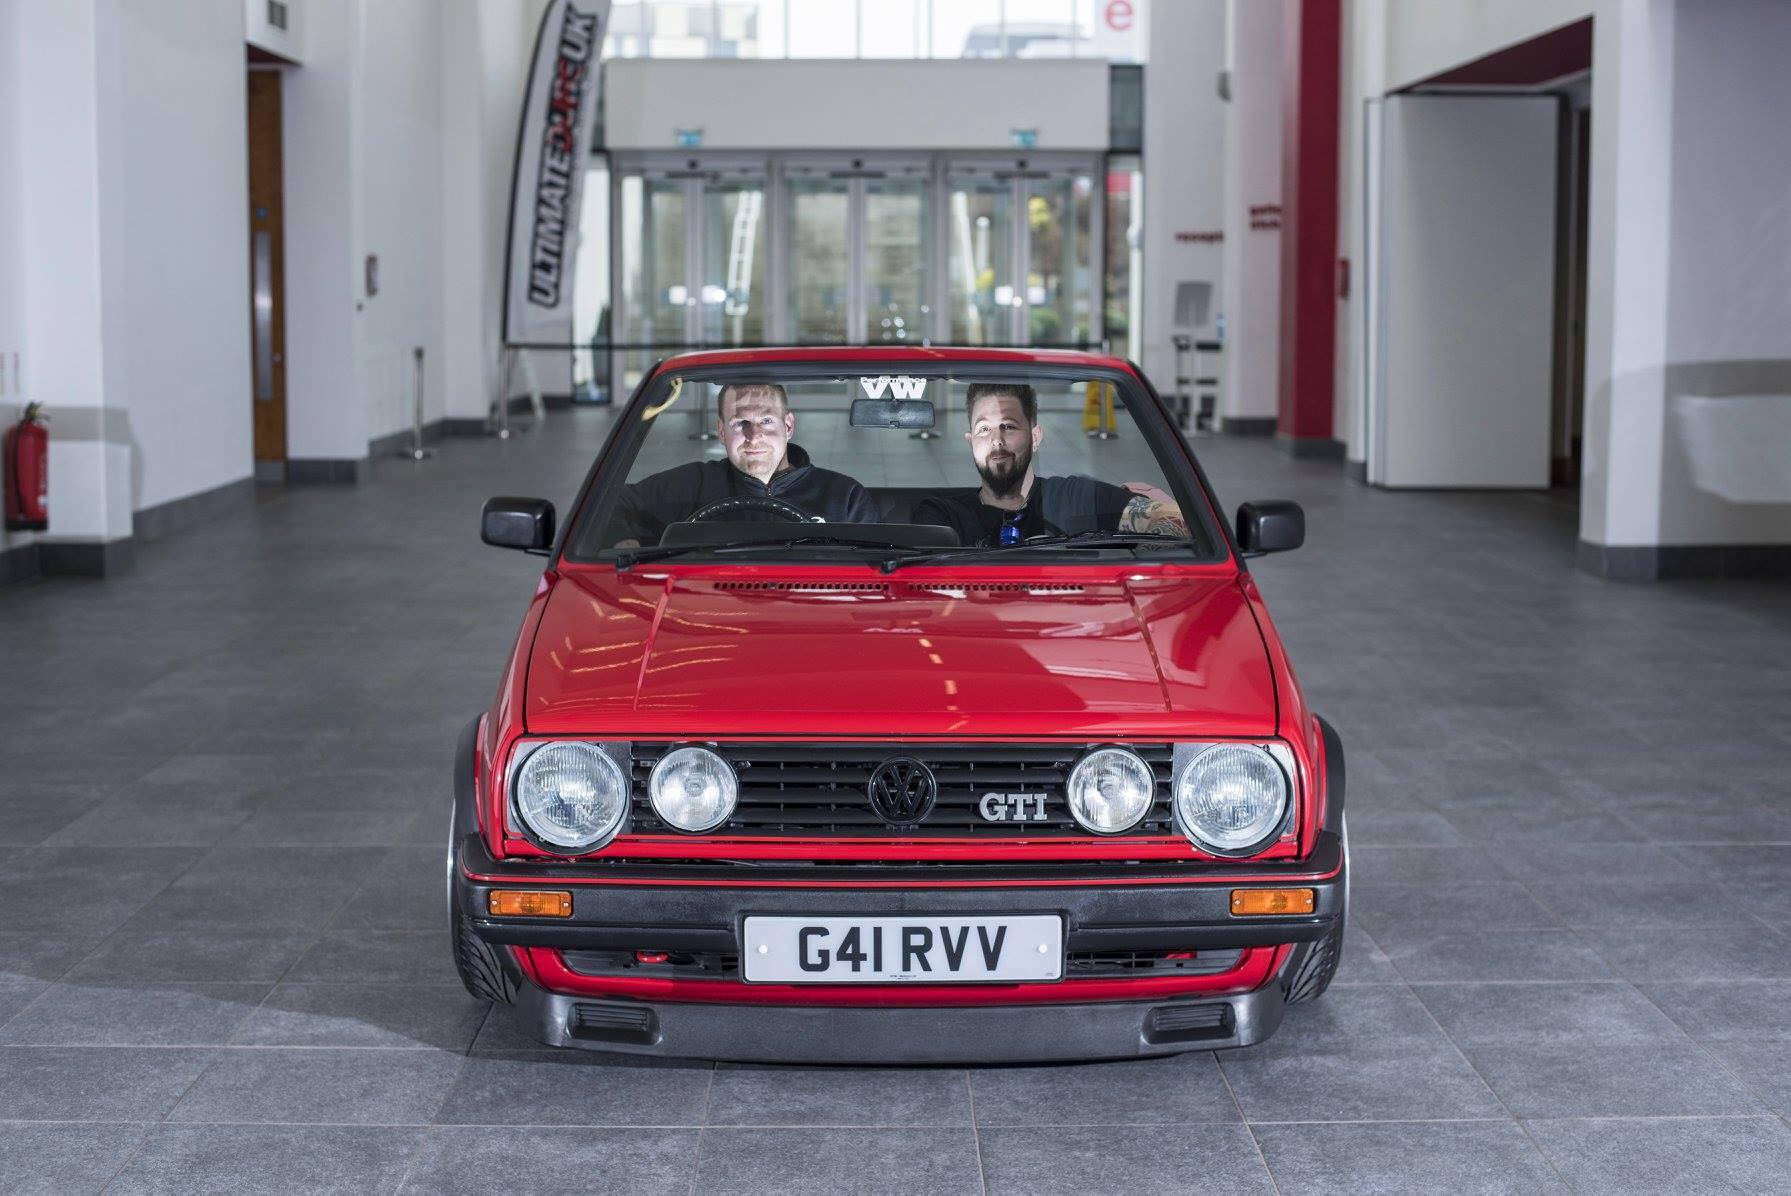 british garage converts volkswagen golf 2 gti to very short wheelbase cabrio autoevolution. Black Bedroom Furniture Sets. Home Design Ideas